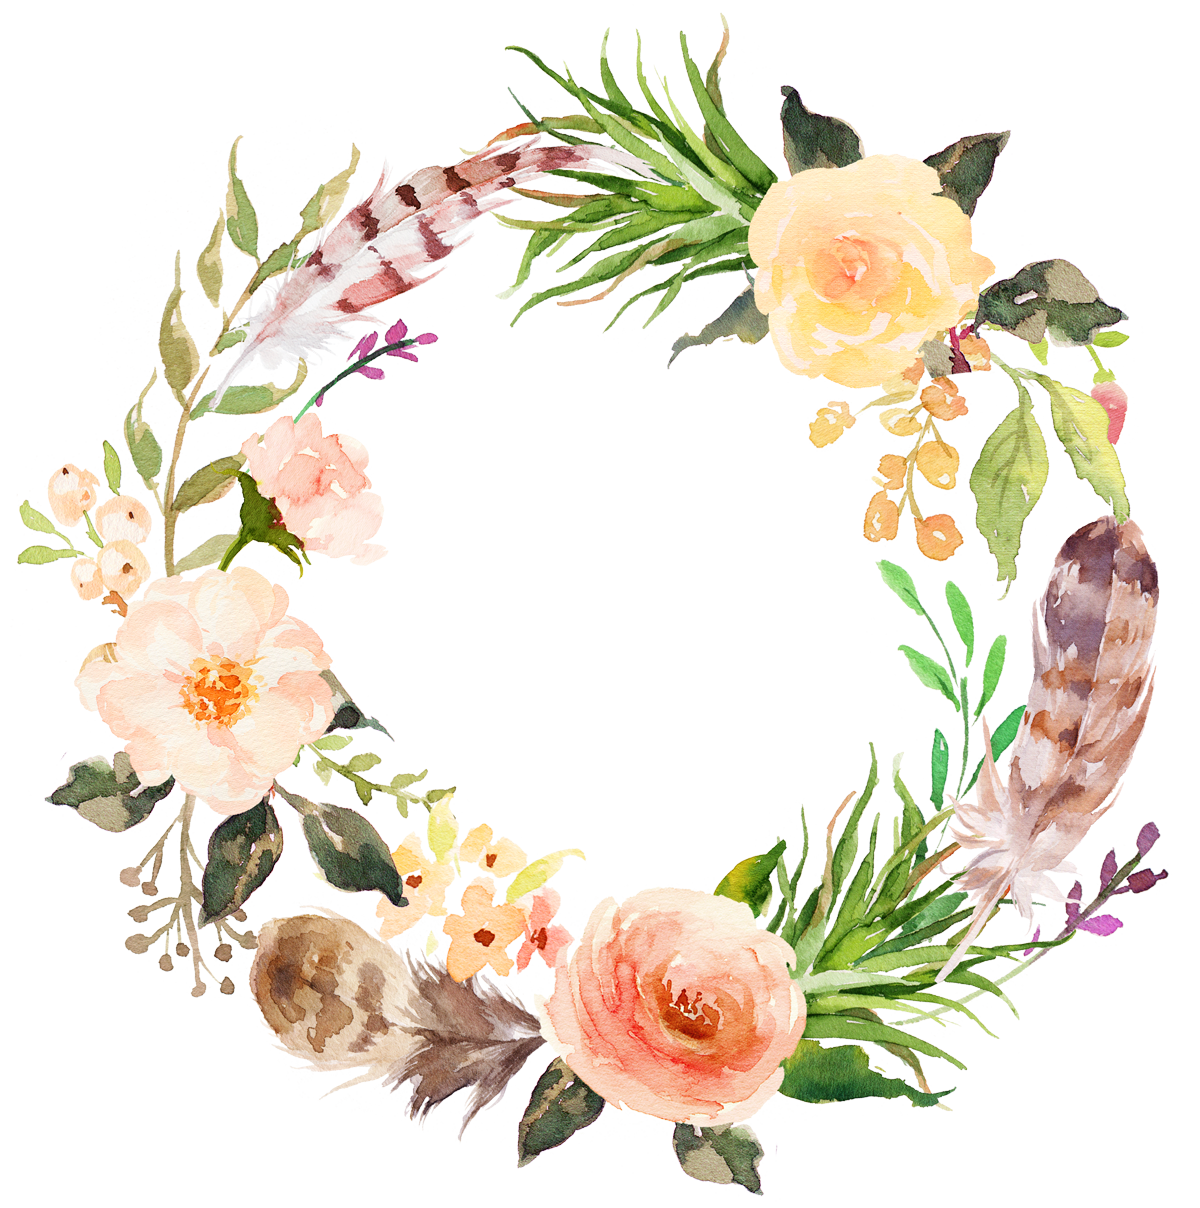 Flower Clip art - Watercolor aesthetic style floral wreath 1200*1208 ...